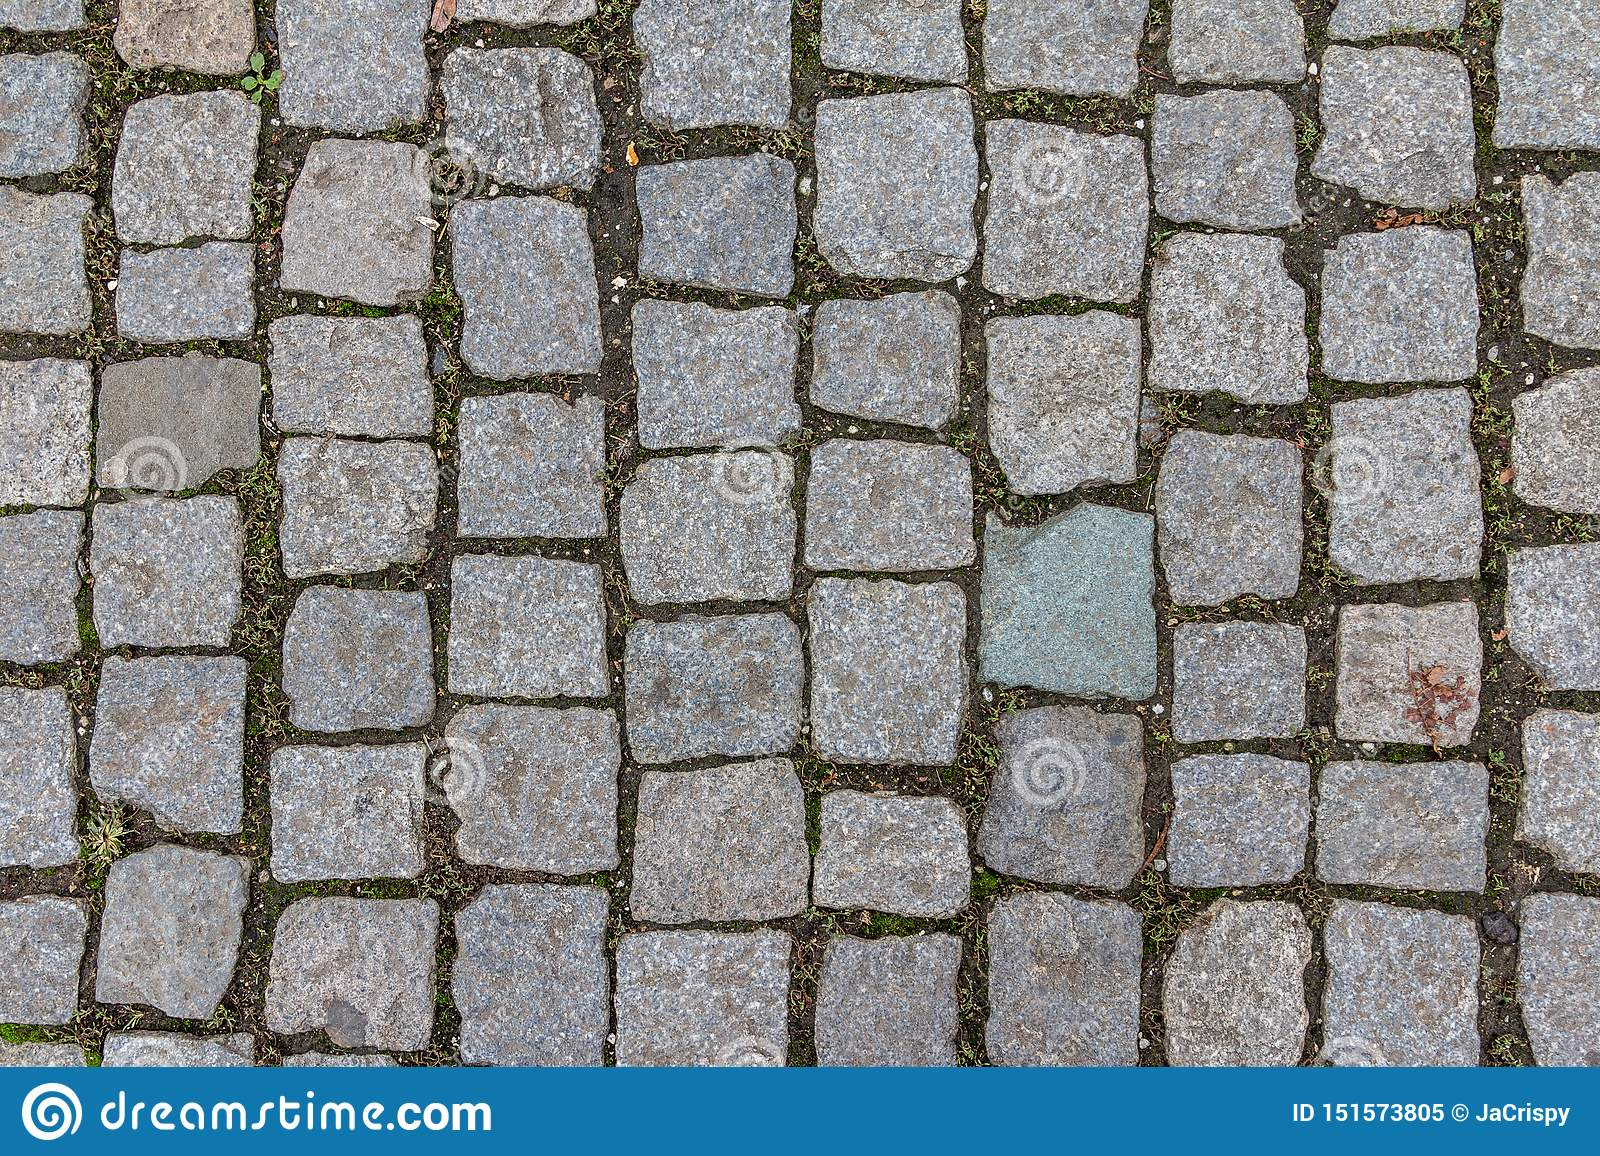 https www dreamstime com old cobblestone tile texture old town city pavement background abstract granite stone brick pattern street sidewalk texture old image151573805